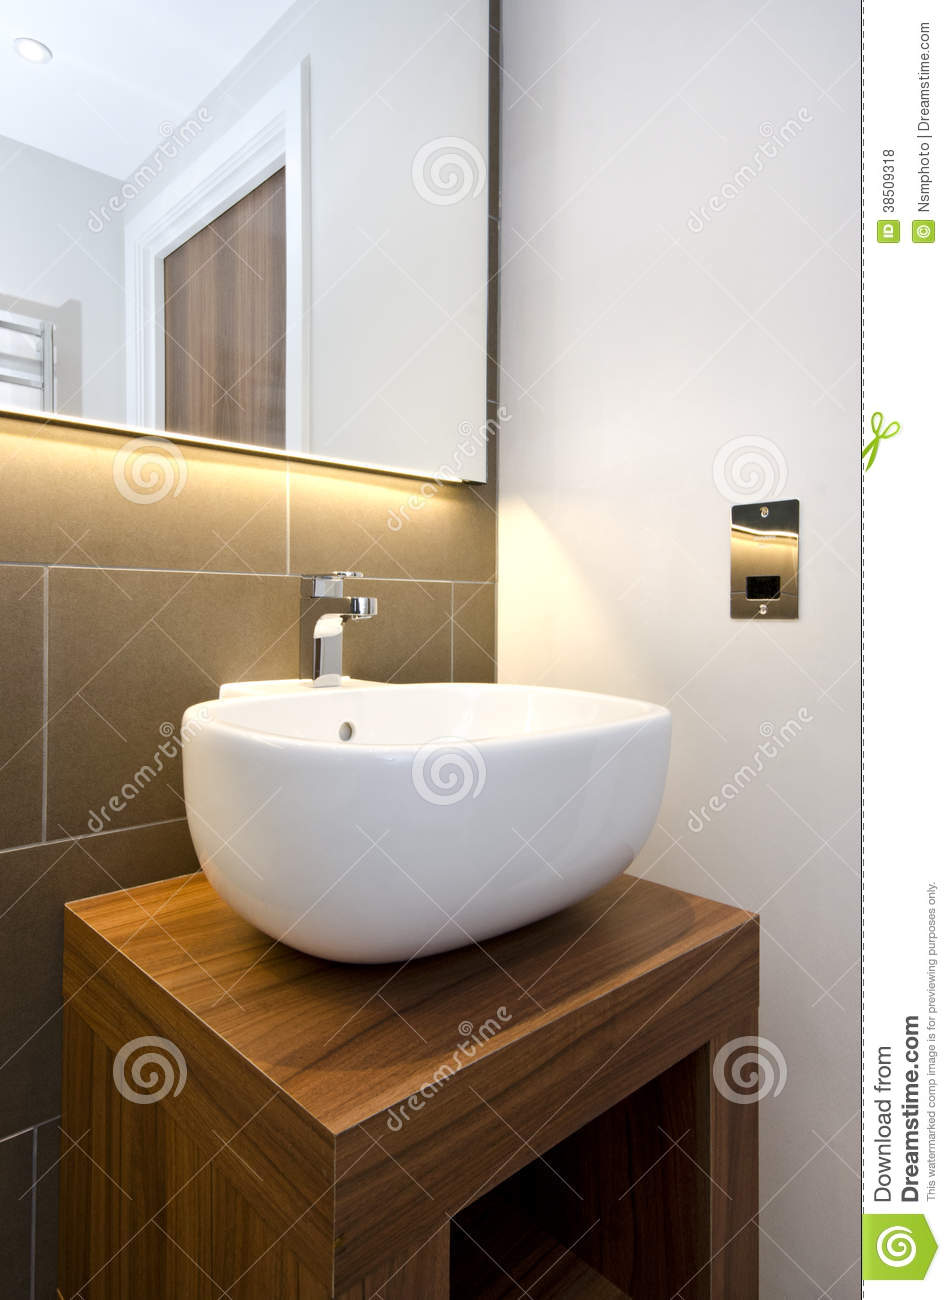 Bathroom Detail Of A Stylish Designer Hand Wash Basin With